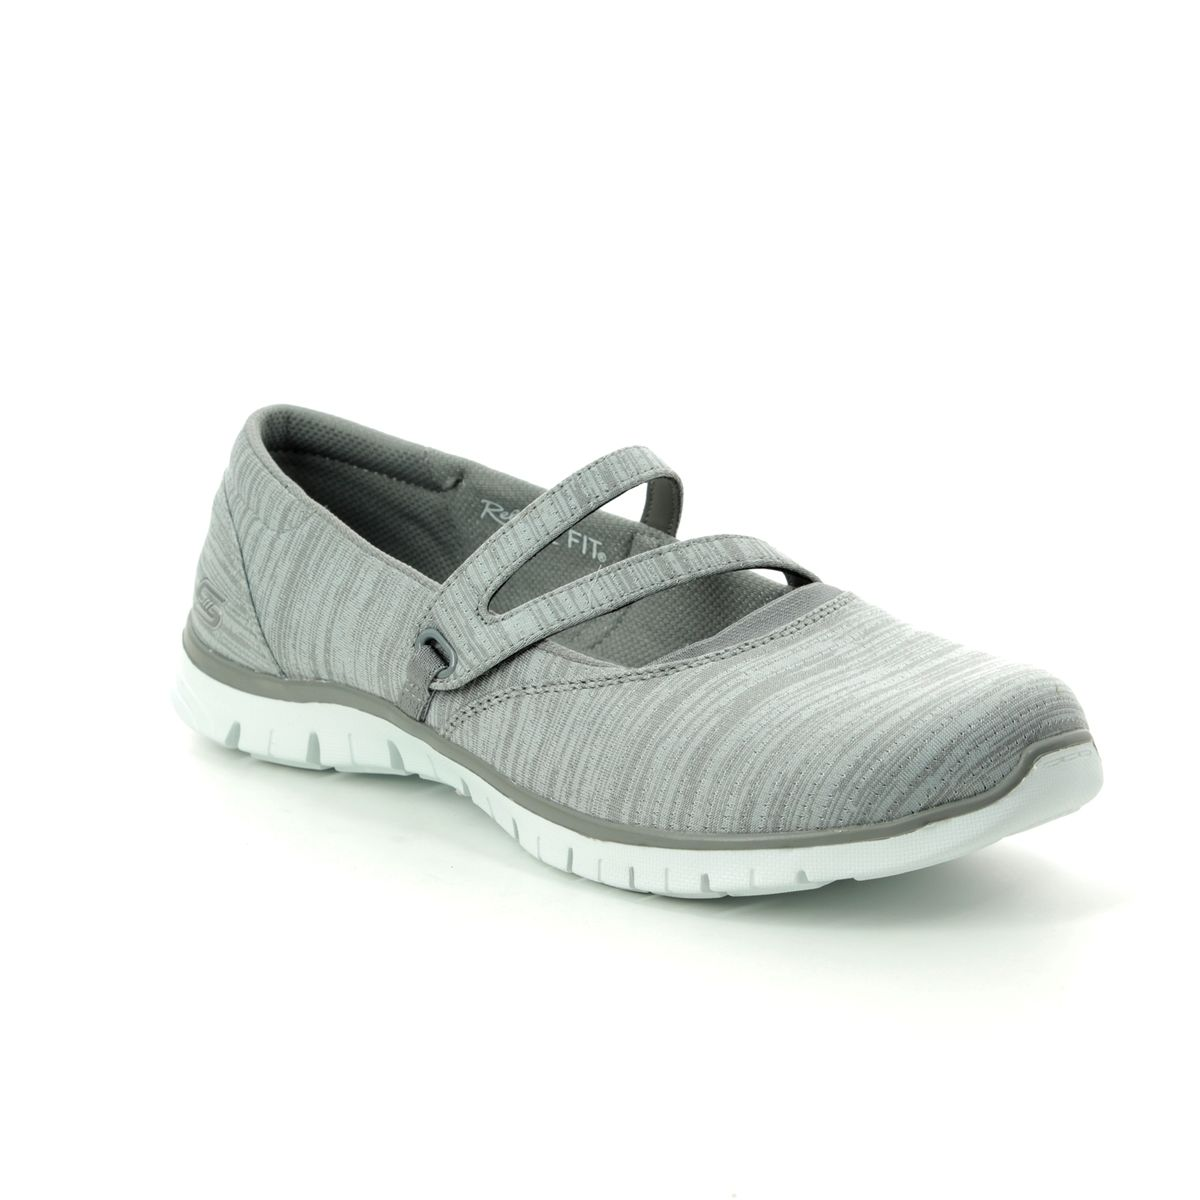 687c681d4d86 Skechers Make It Count 23469 GRY Grey Mary Jane Shoes